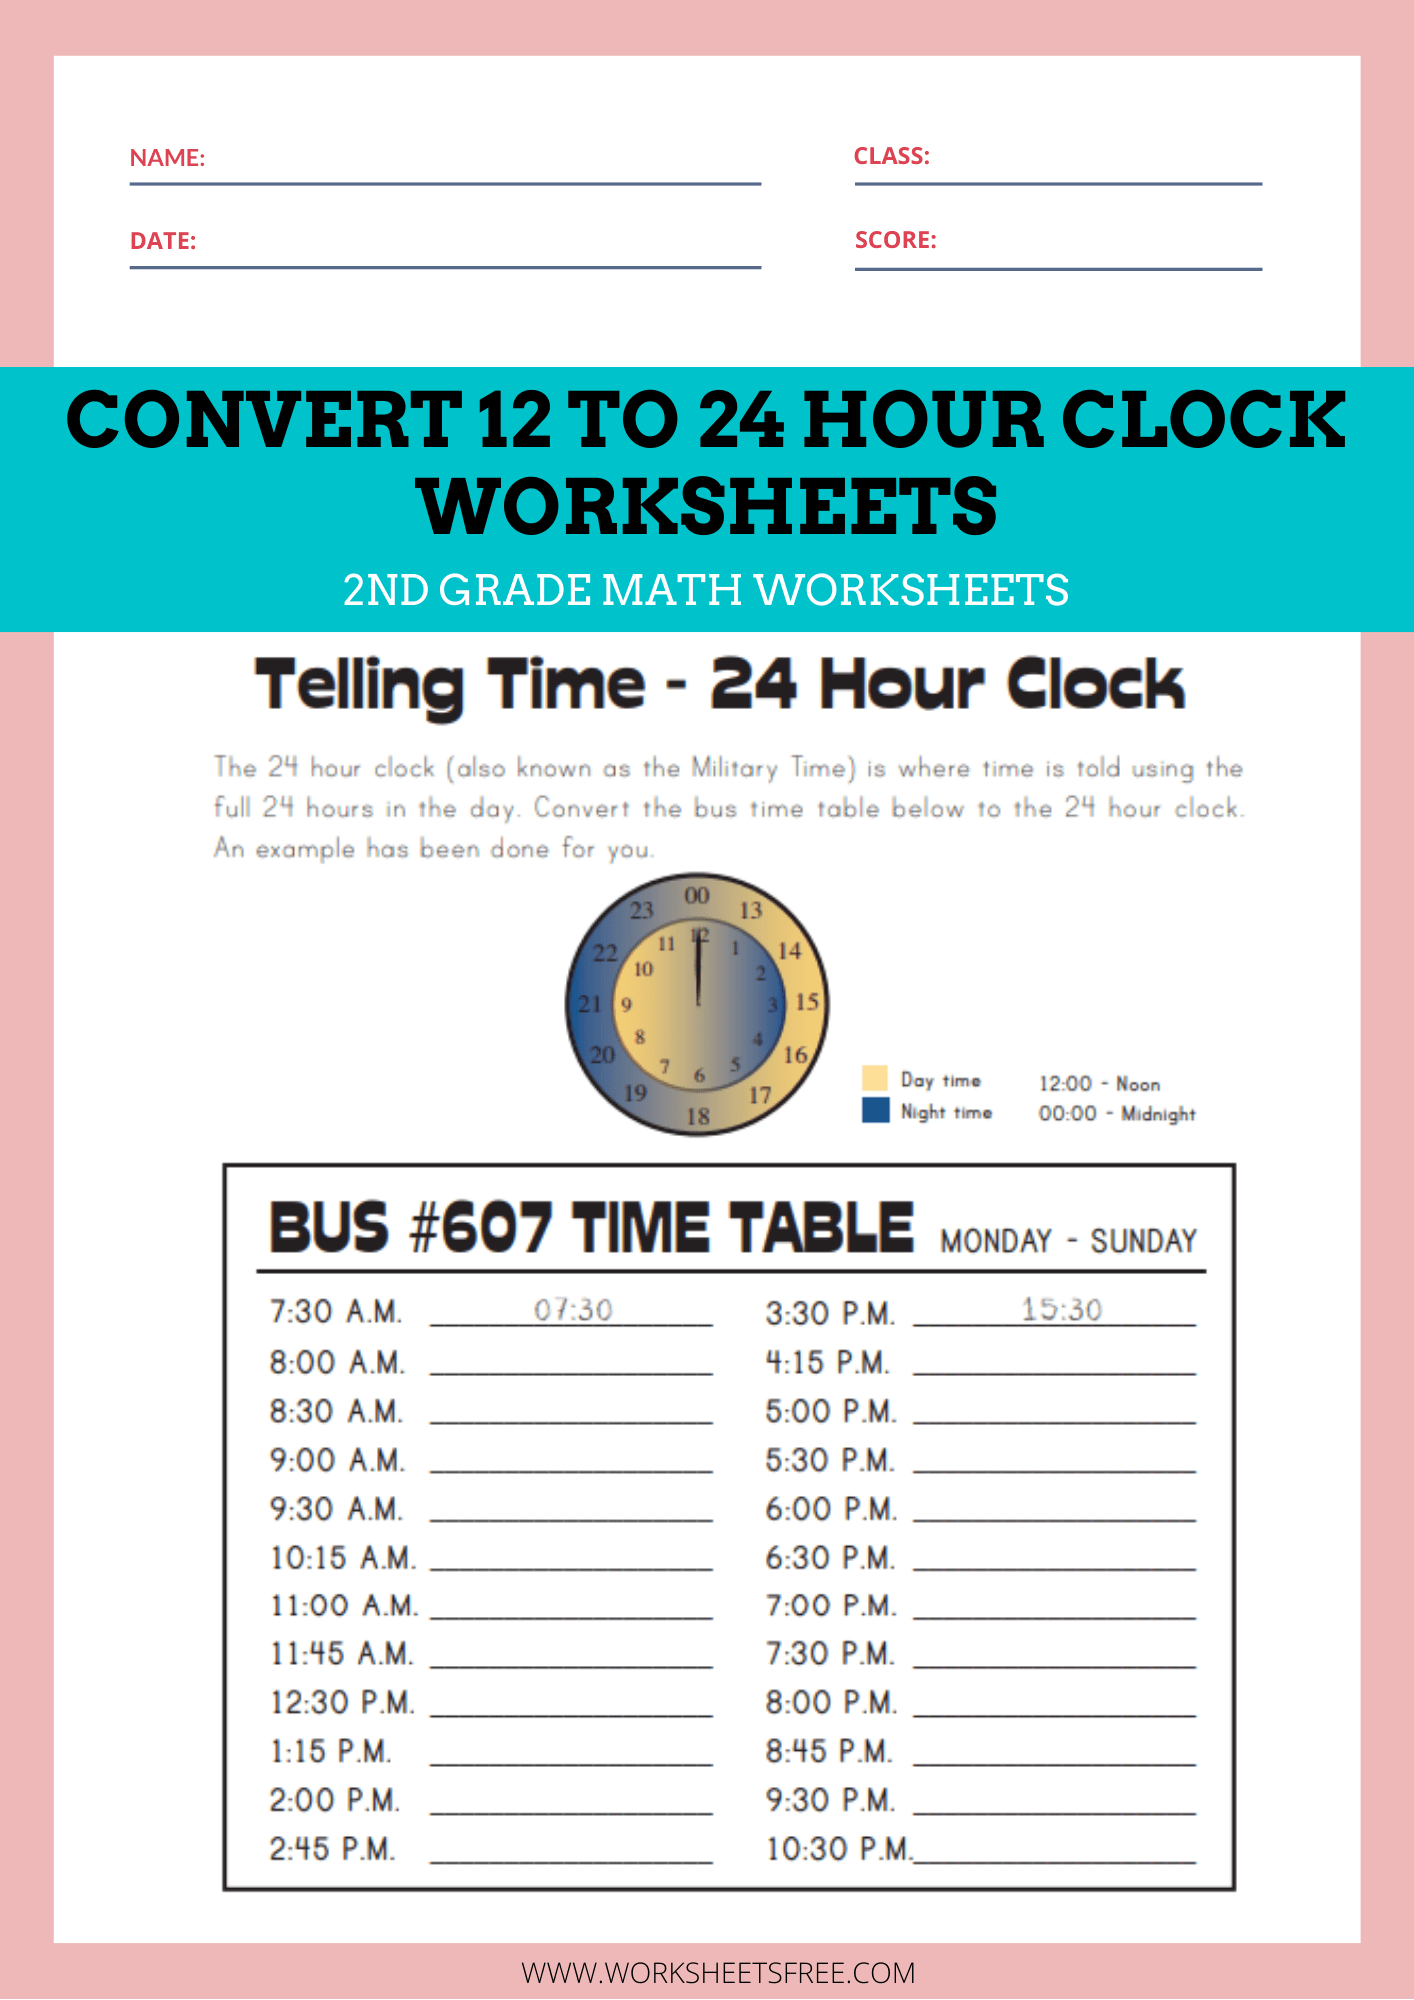 medium resolution of Convert-12-to-24-Hour-Clock-Worksheets   Worksheets Free